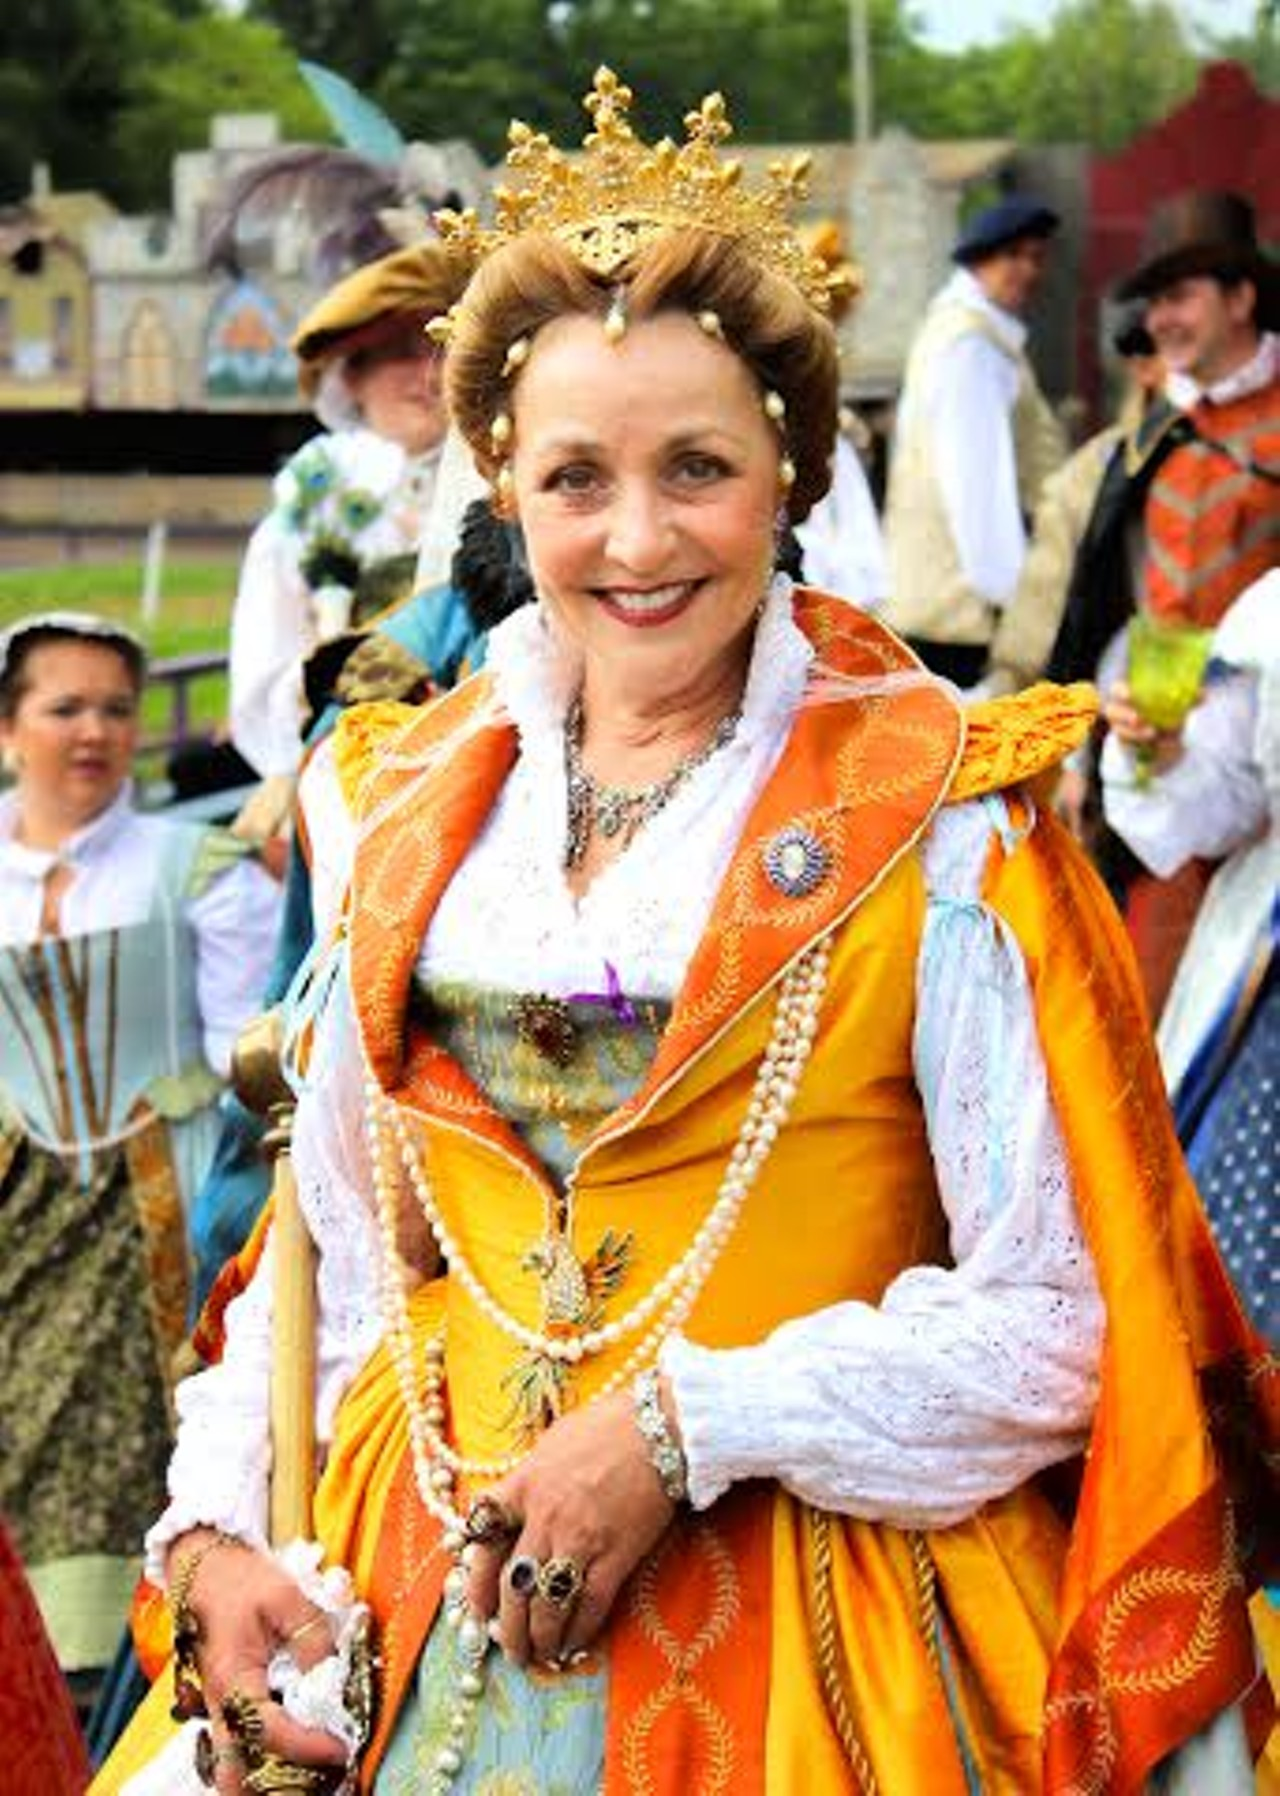 Renaissance Fairs: Bow Down To Caroline Jett, The Renaissance Festival's